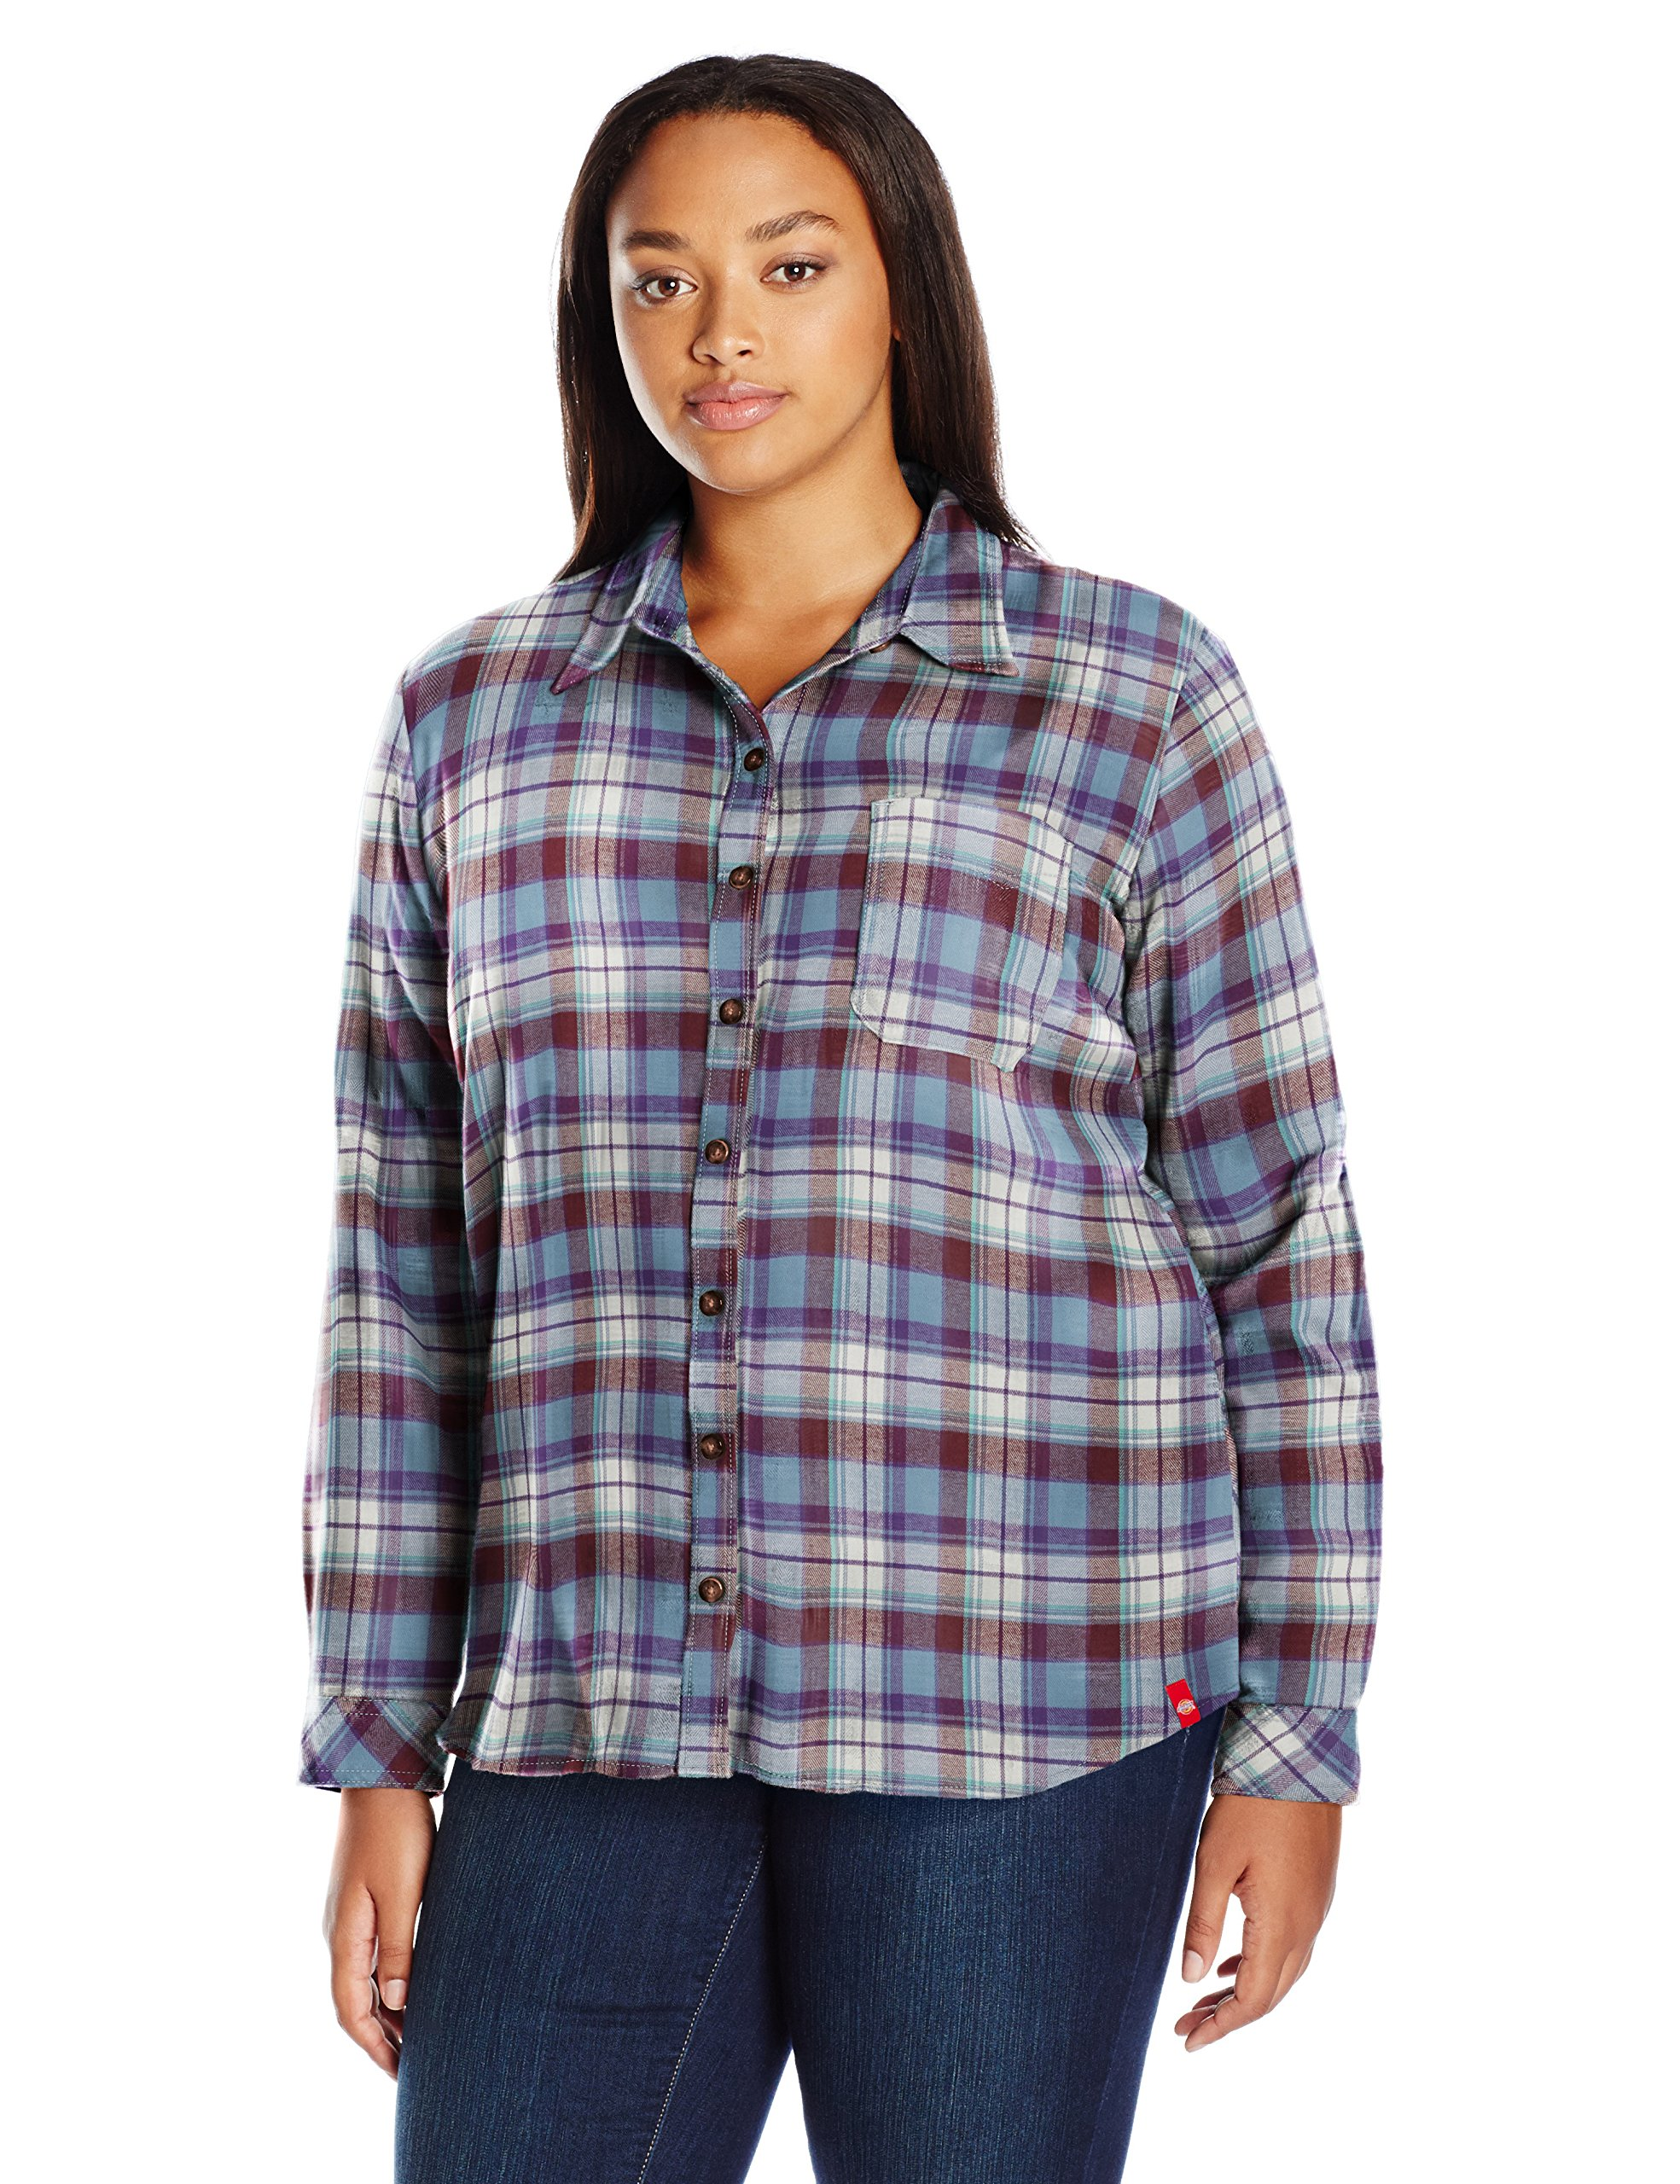 Dickies Women's Plus Size Long-Sleeve Plaid Flannel Shirt, Dusty Blue/Opaque White Plaid, 1X